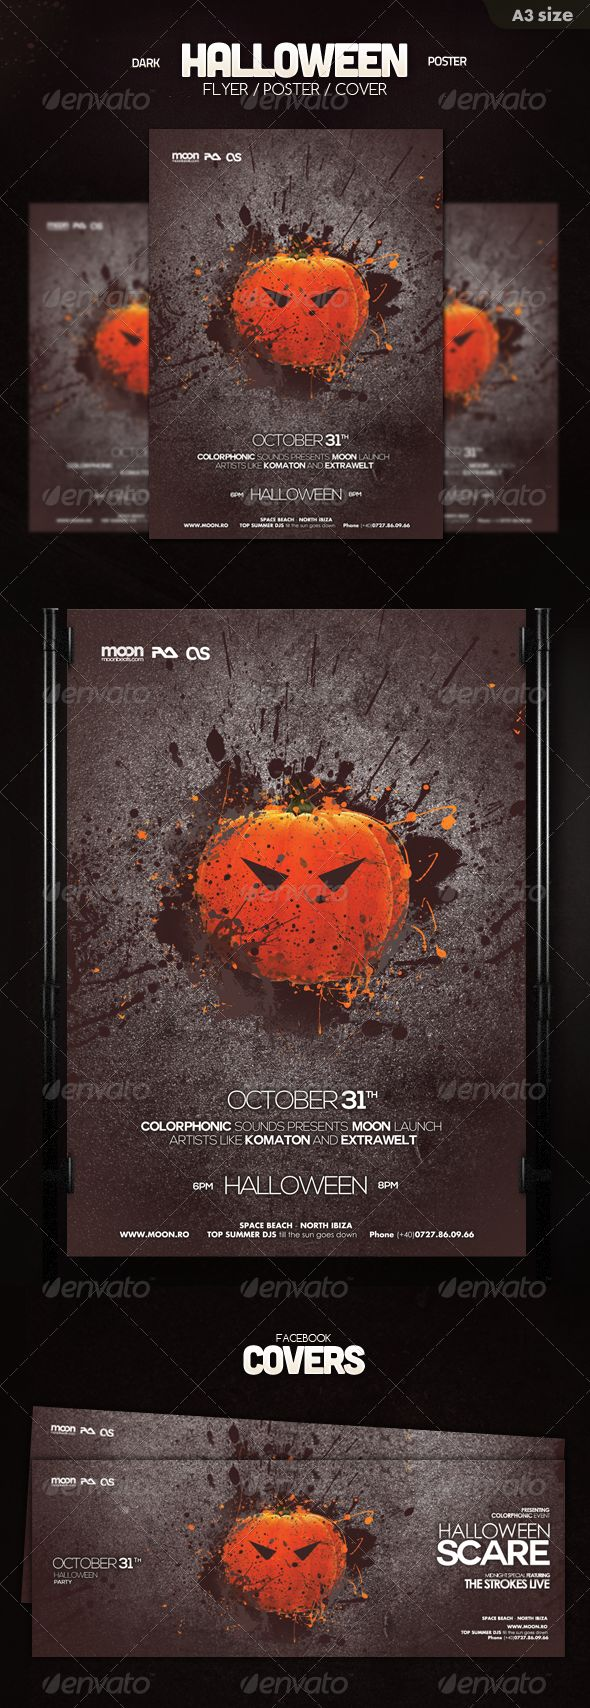 Halloween Poster Flyer Template PSD | Buy and Download: http://graphicriver.net/item/halloween-poster-flyer/5815877?ref=ksioks